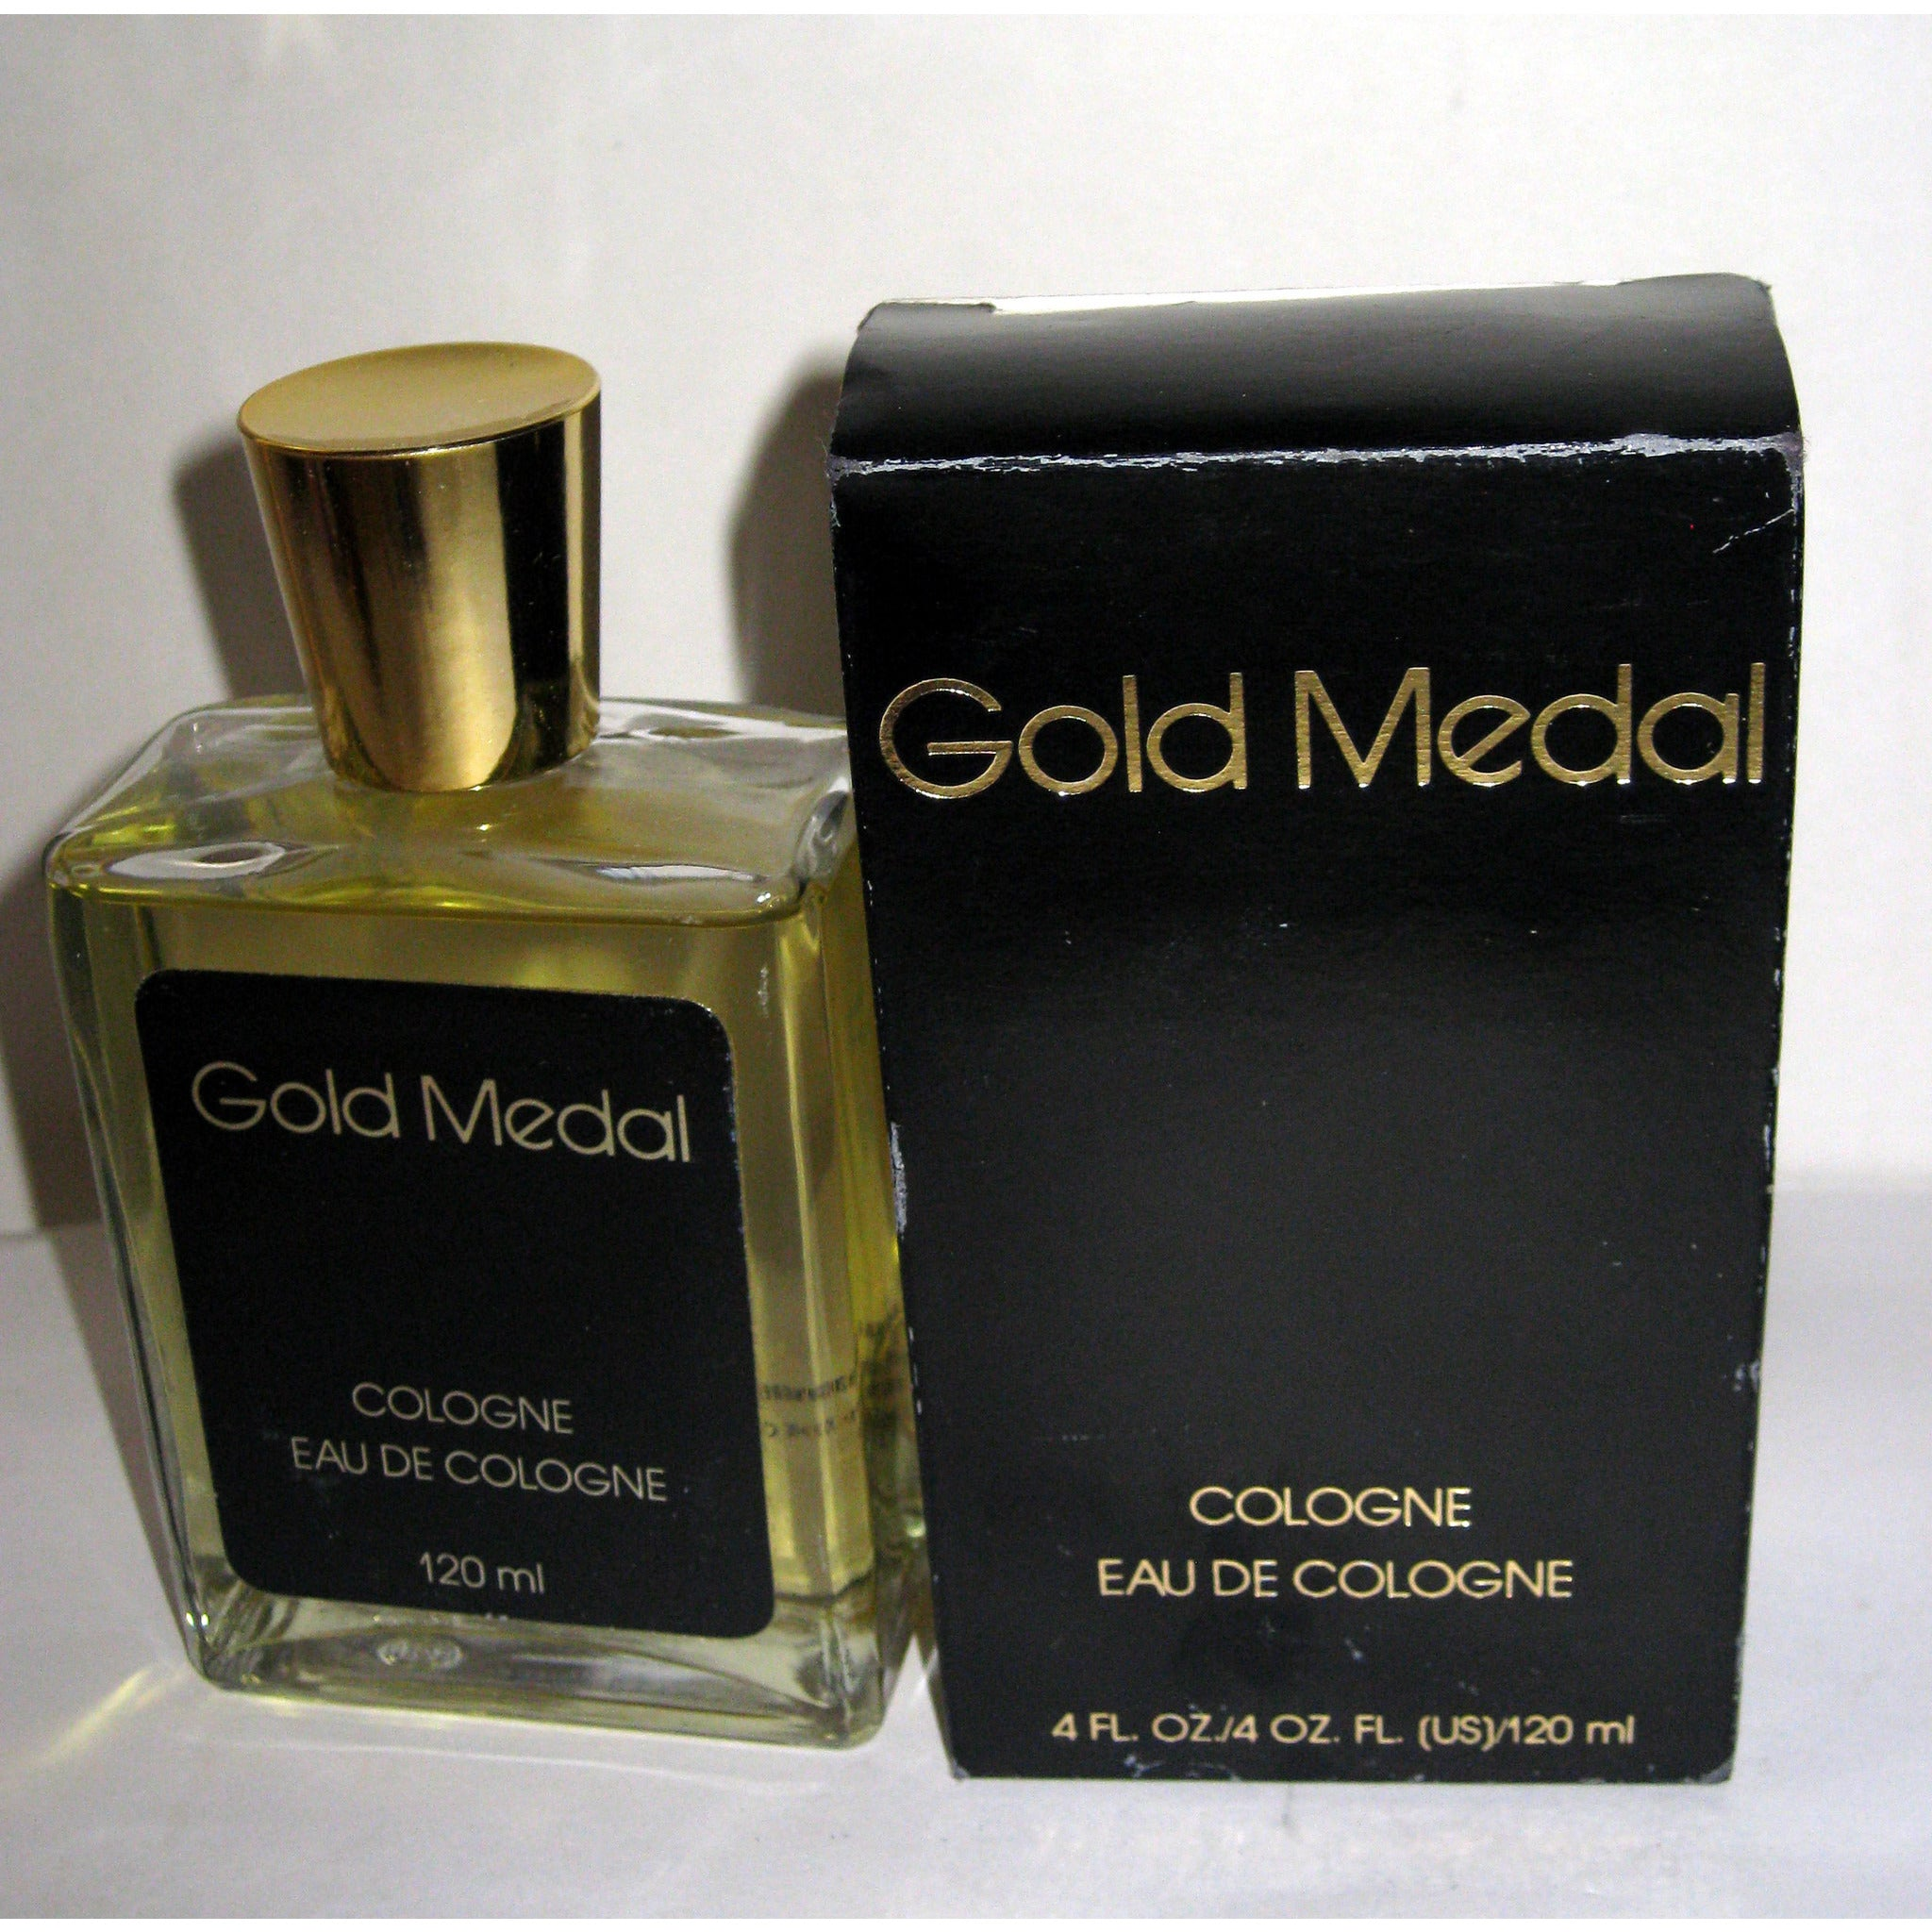 Vintage Gold Medal Cologne By Rose Marie